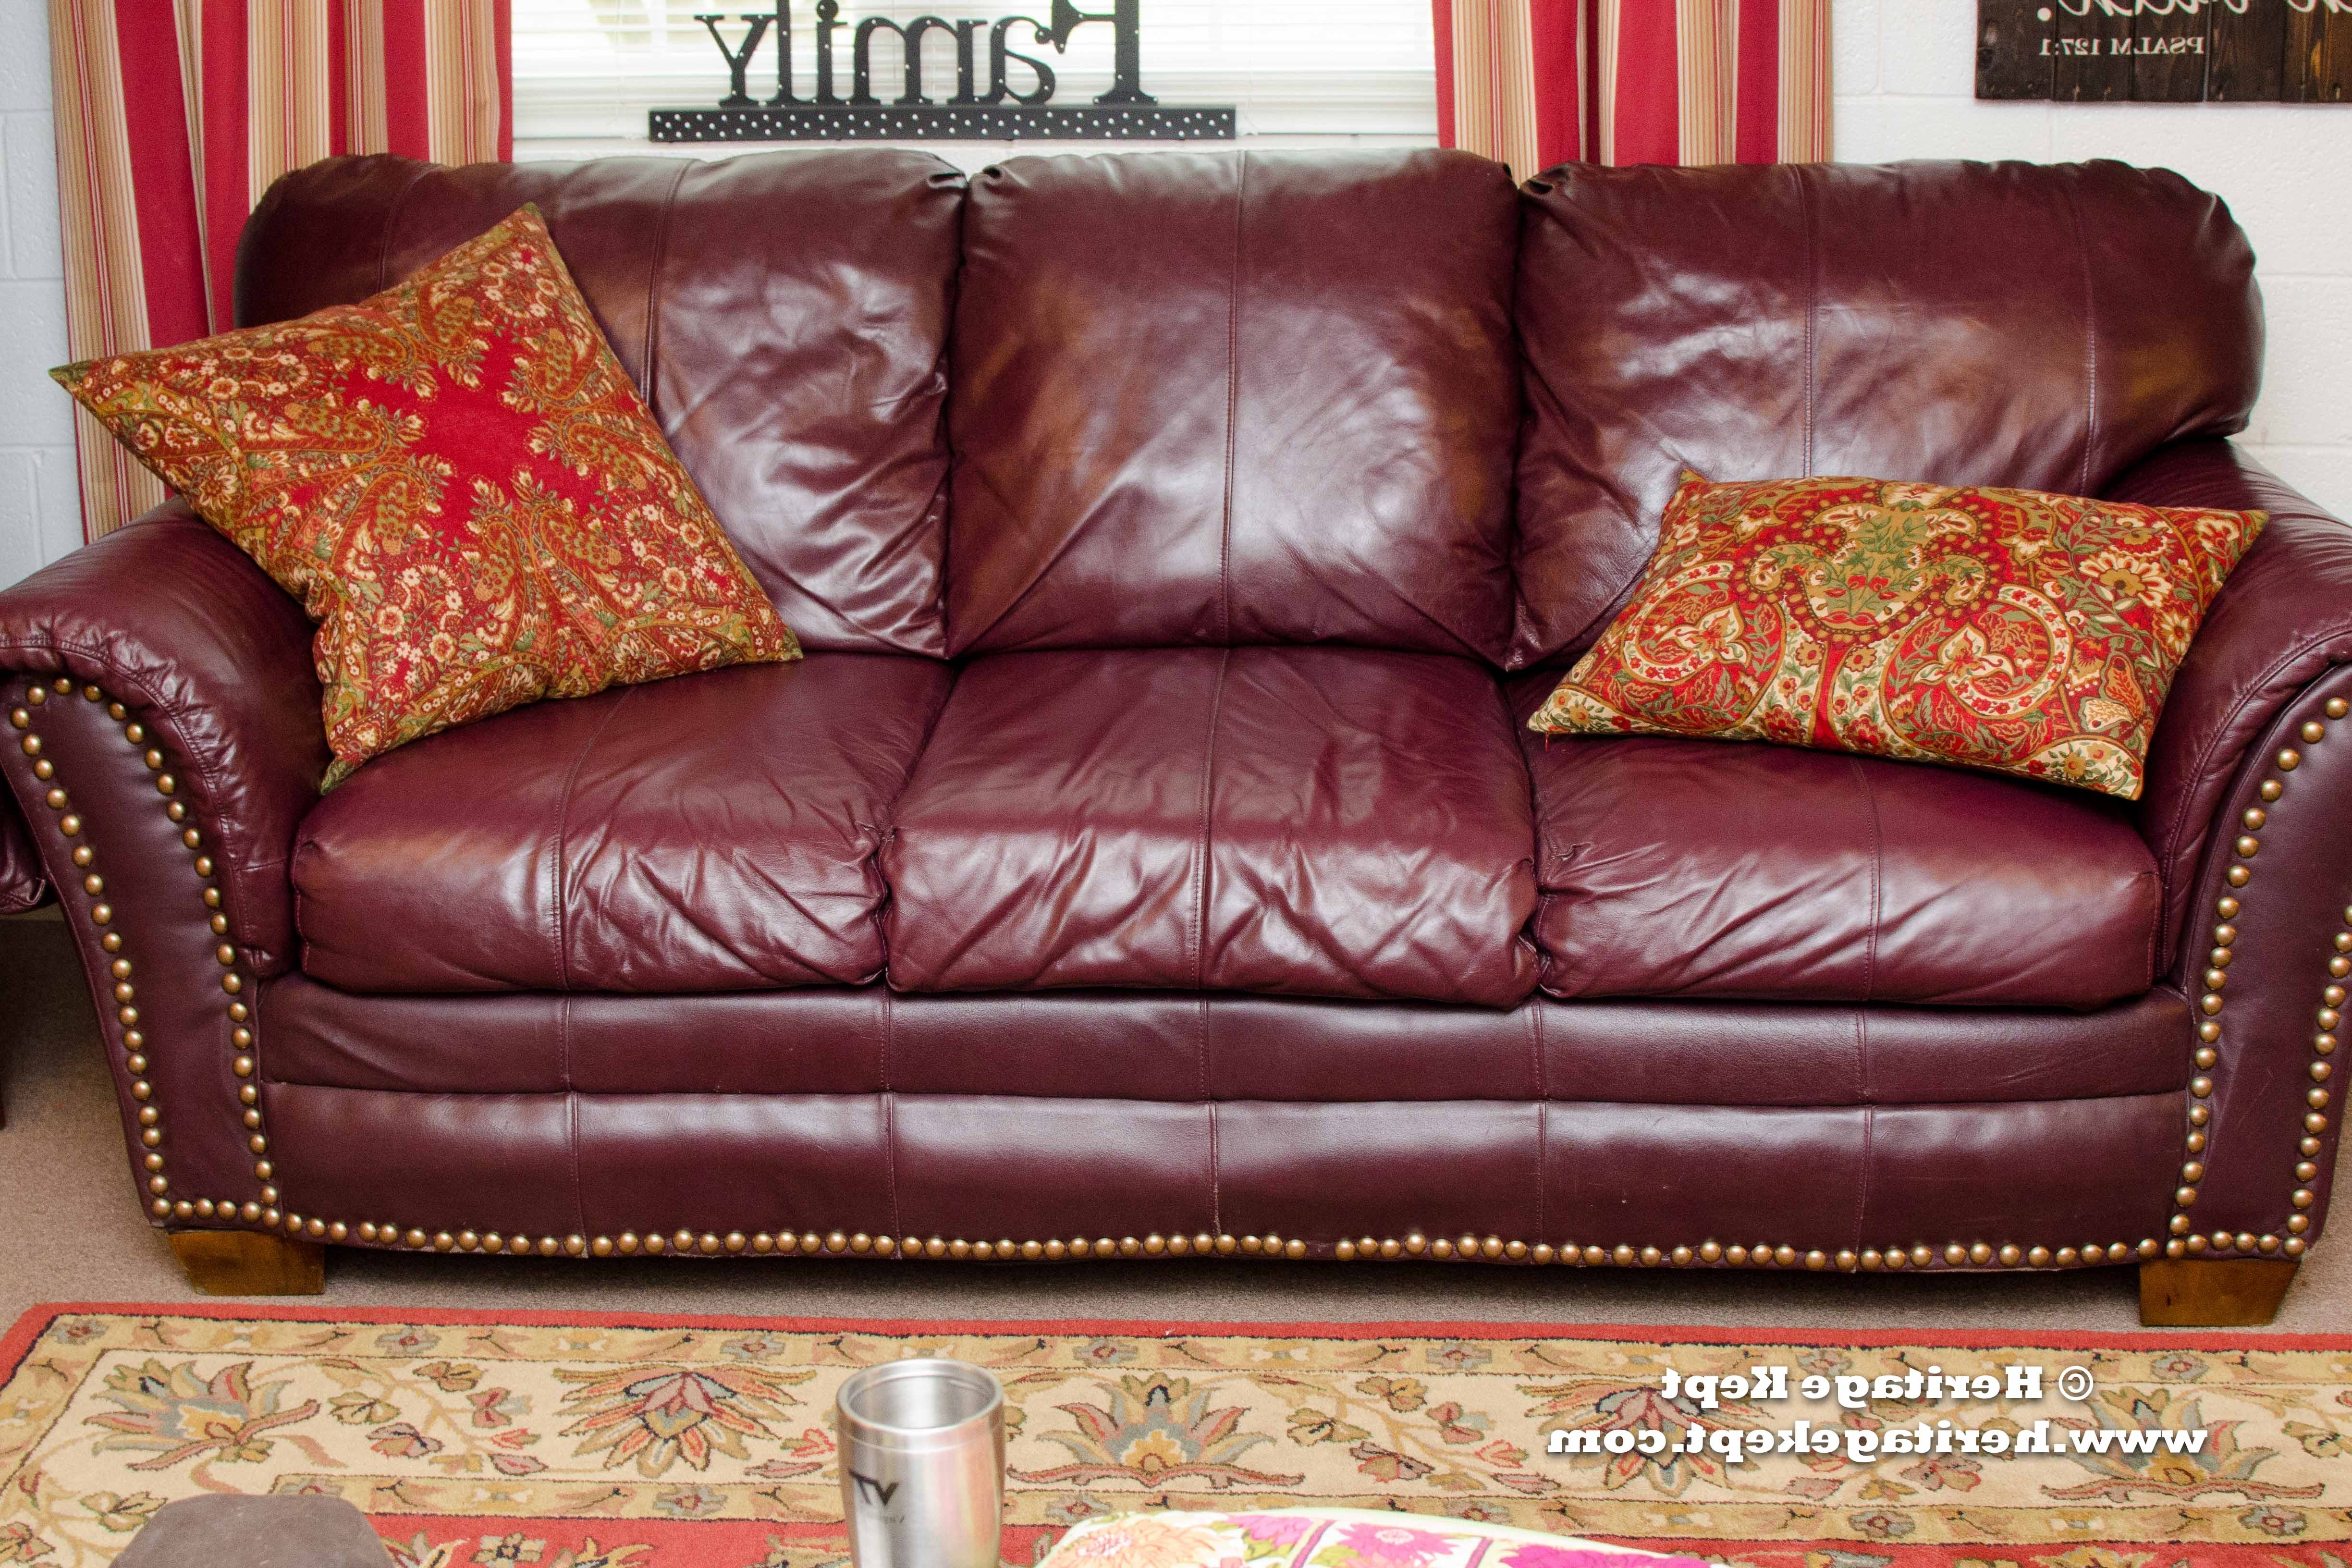 Famous Awesome Leather Couch Craigslist 45 In Office Sofa Ideas With Intended For Craigslist Leather Sofas (View 11 of 20)